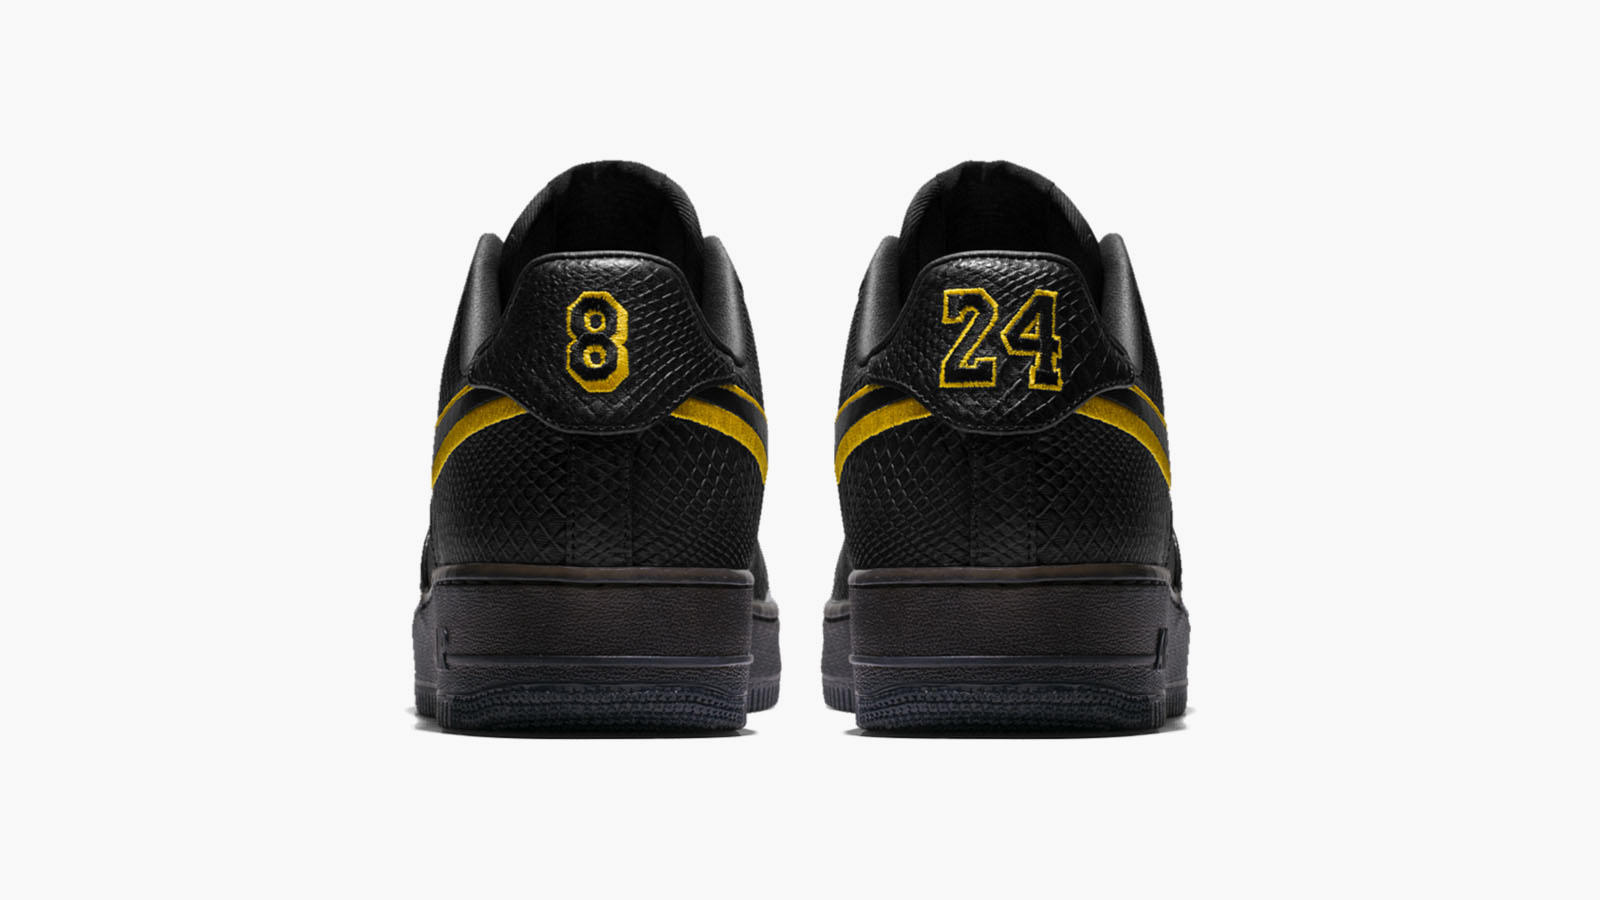 Five Things to Know About the Commemorative Kobe Bryant Black Mamba Air Force 1 17